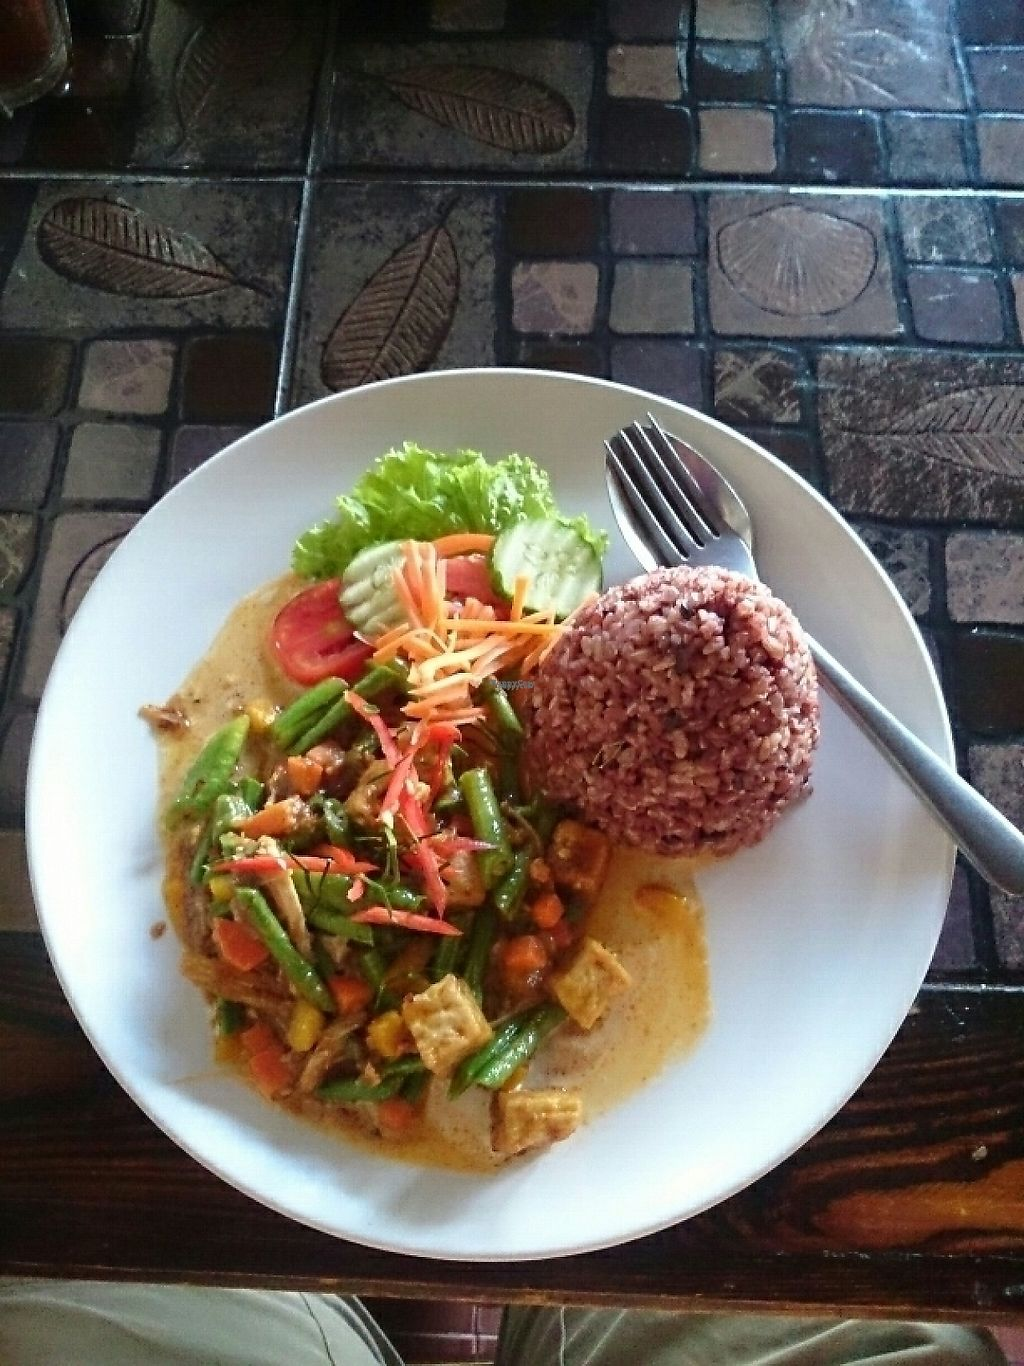 "Photo of CLOSED: Pai Vegetarian  by <a href=""/members/profile/kristoferb"">kristoferb</a> <br/>panang curry 65 baht <br/> January 24, 2017  - <a href='/contact/abuse/image/69234/215649'>Report</a>"